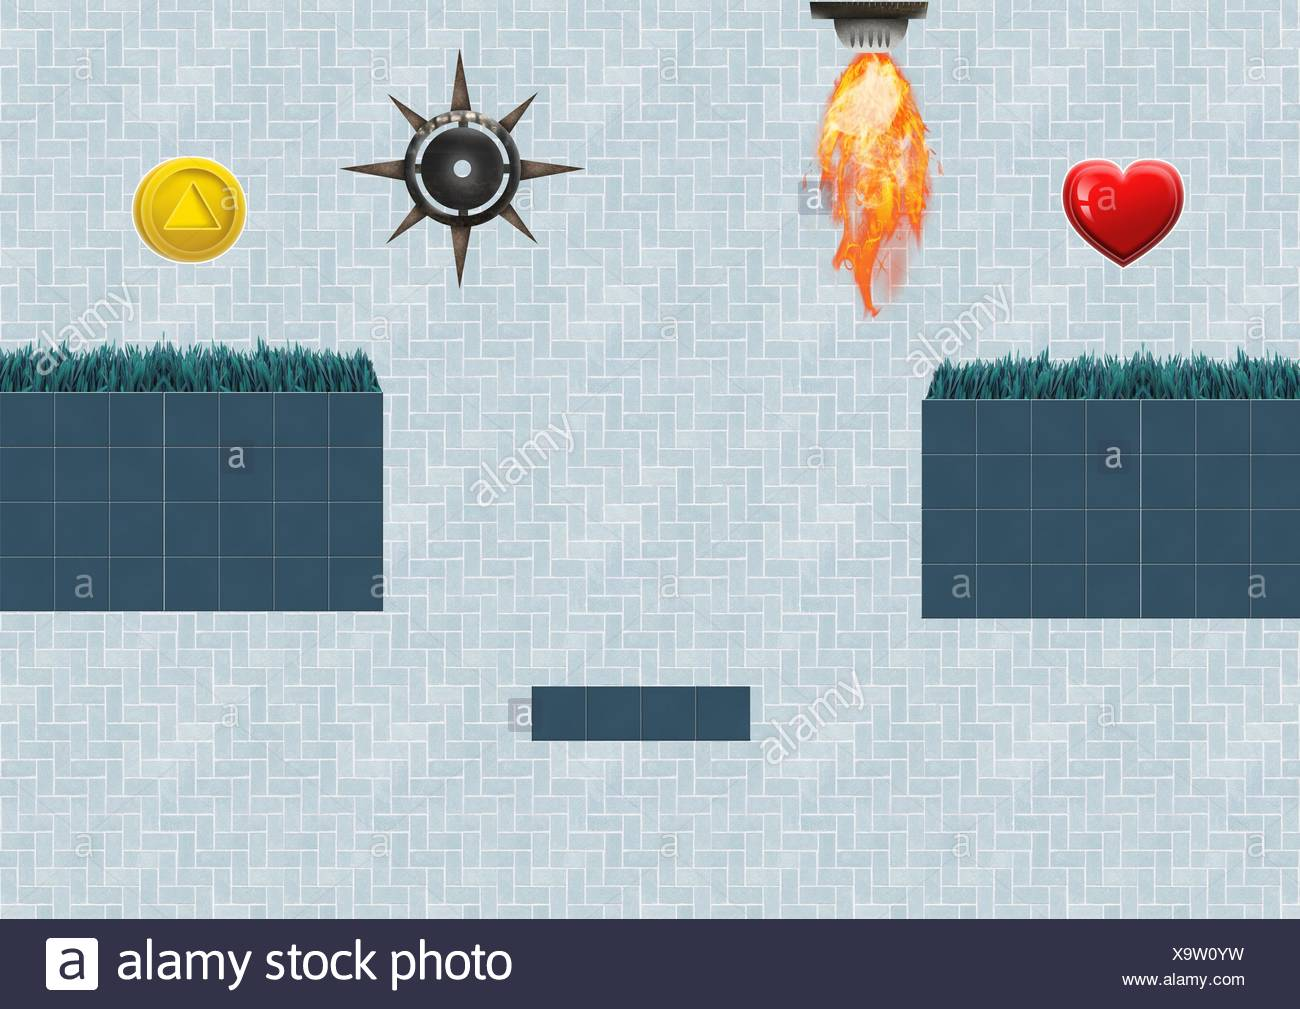 Computer Game Level with collectibles and traps - Stock Image